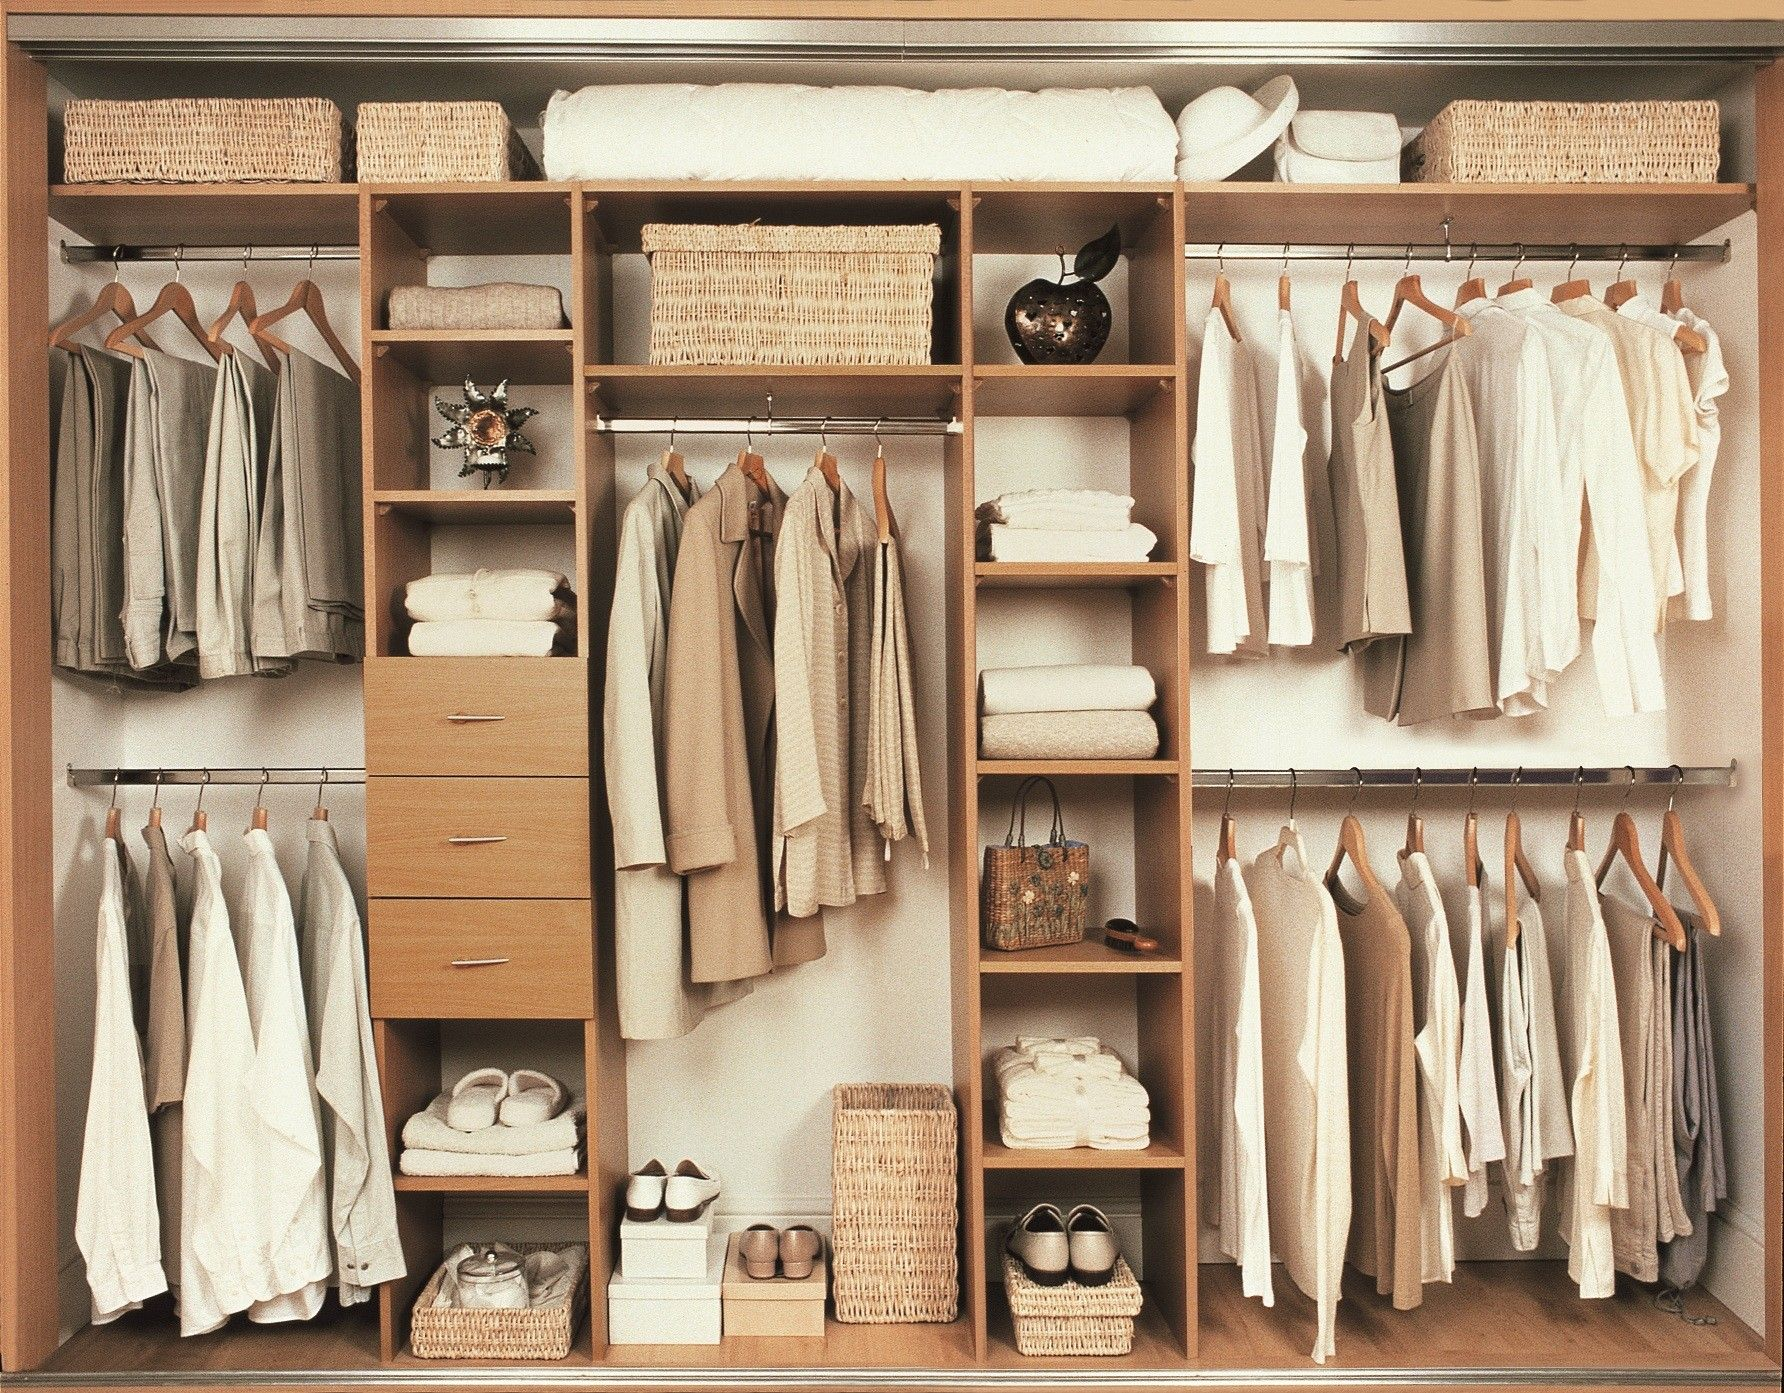 Bedroom Interior Furniture Light Brown Hardwood Closet Bedroom Cabinets With Three Drawers And Towel Closet Design Layout Closet Layout Apartment Bedroom Decor